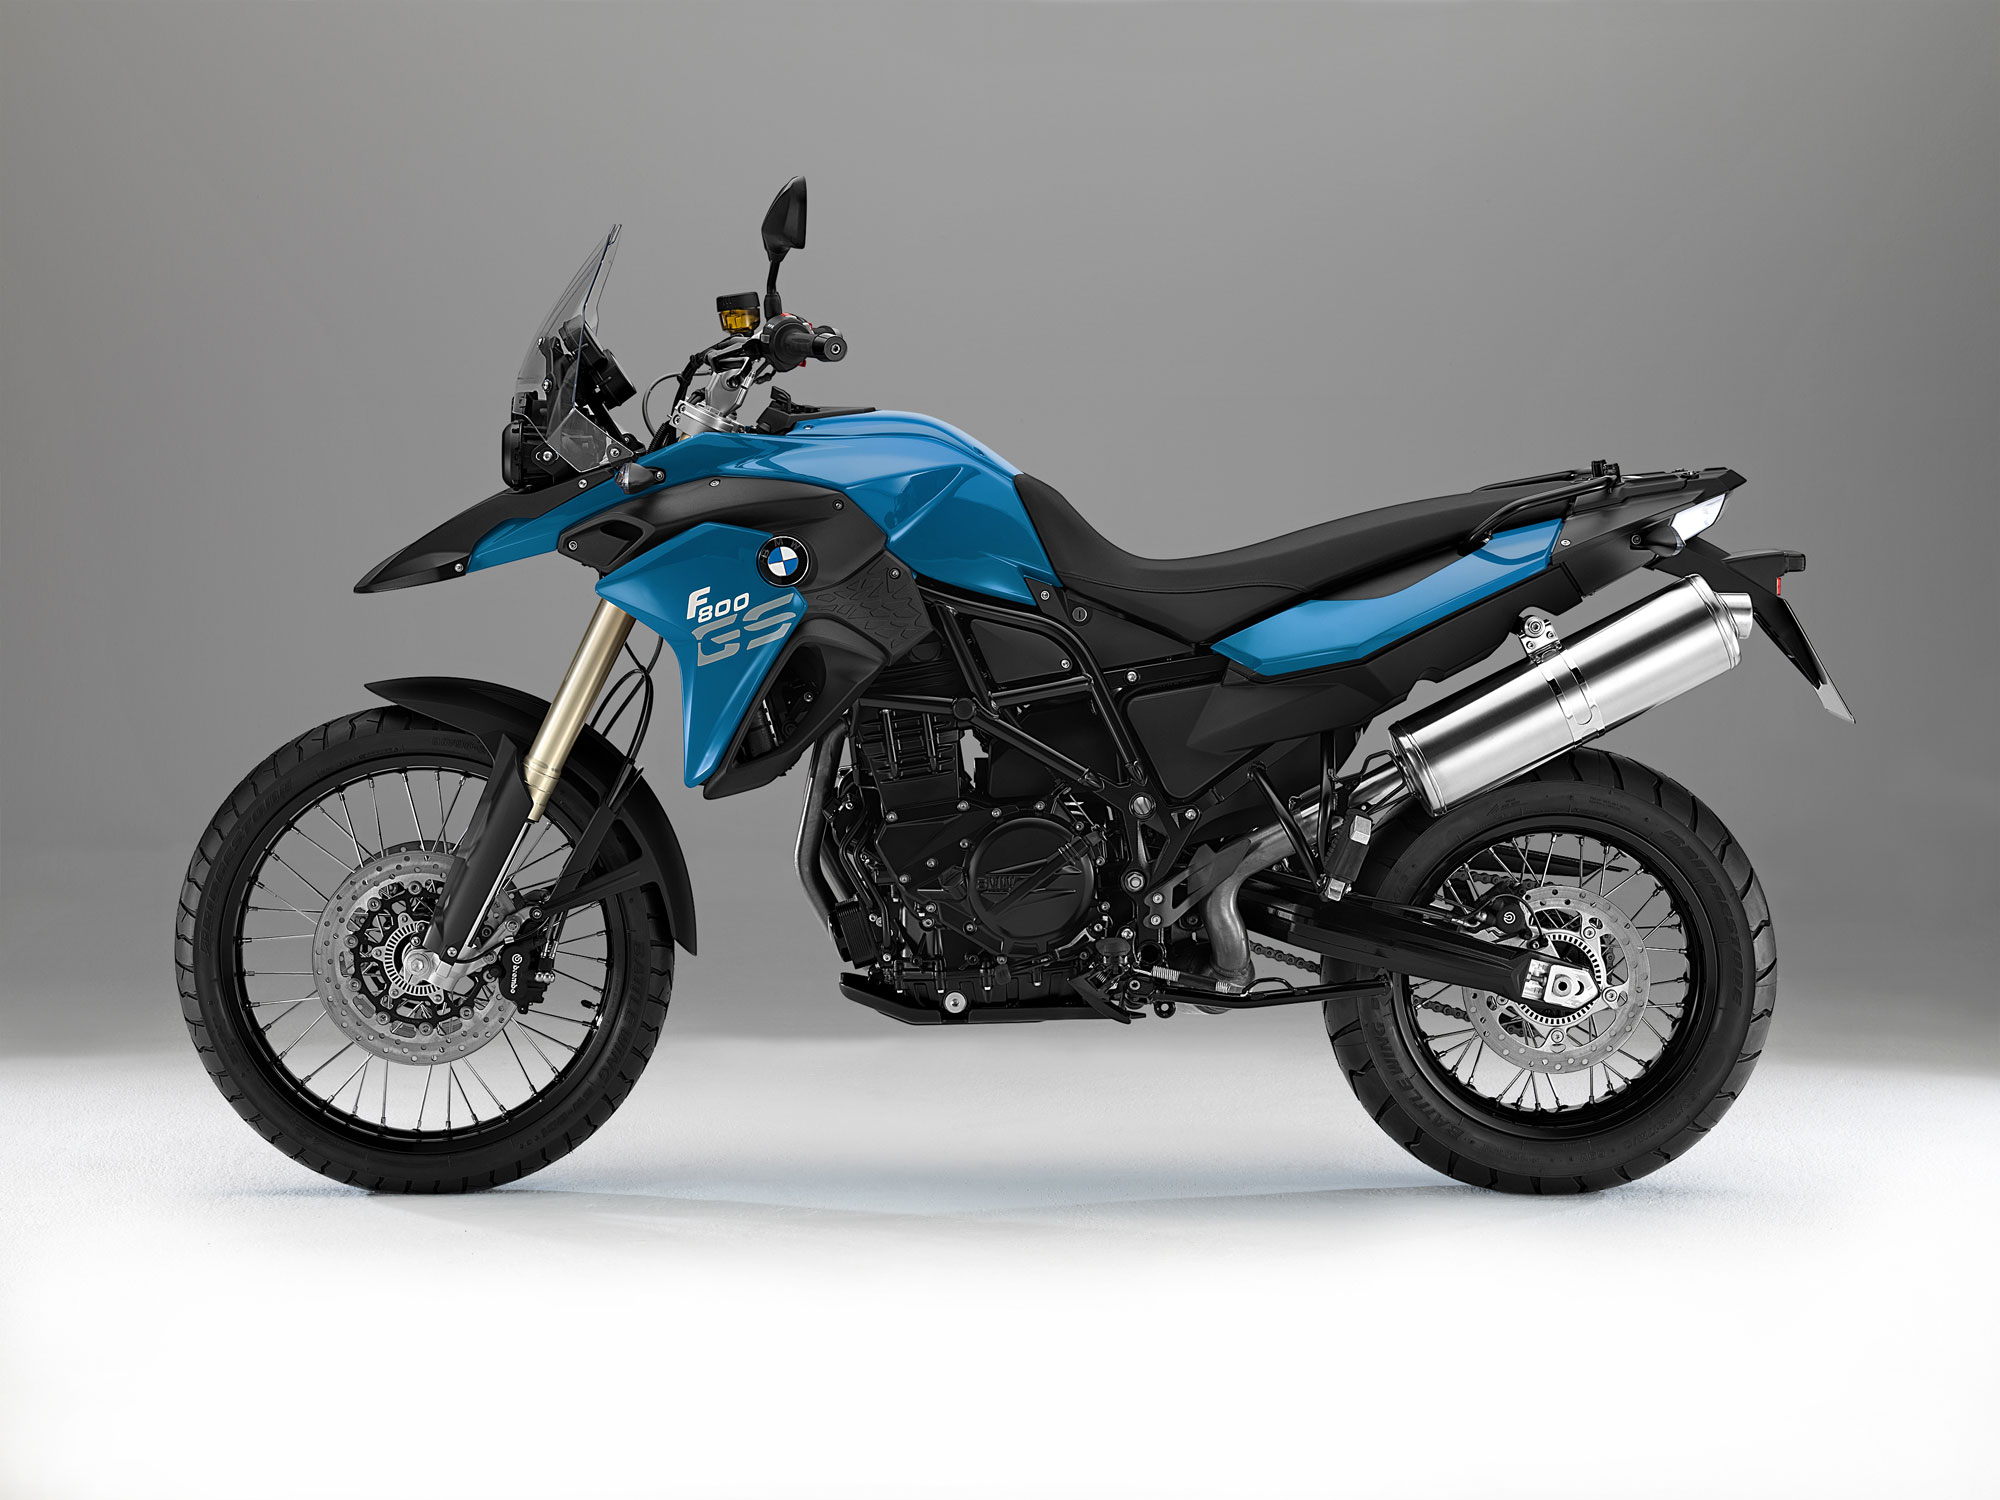 BMW F800GS 2013 images #36612